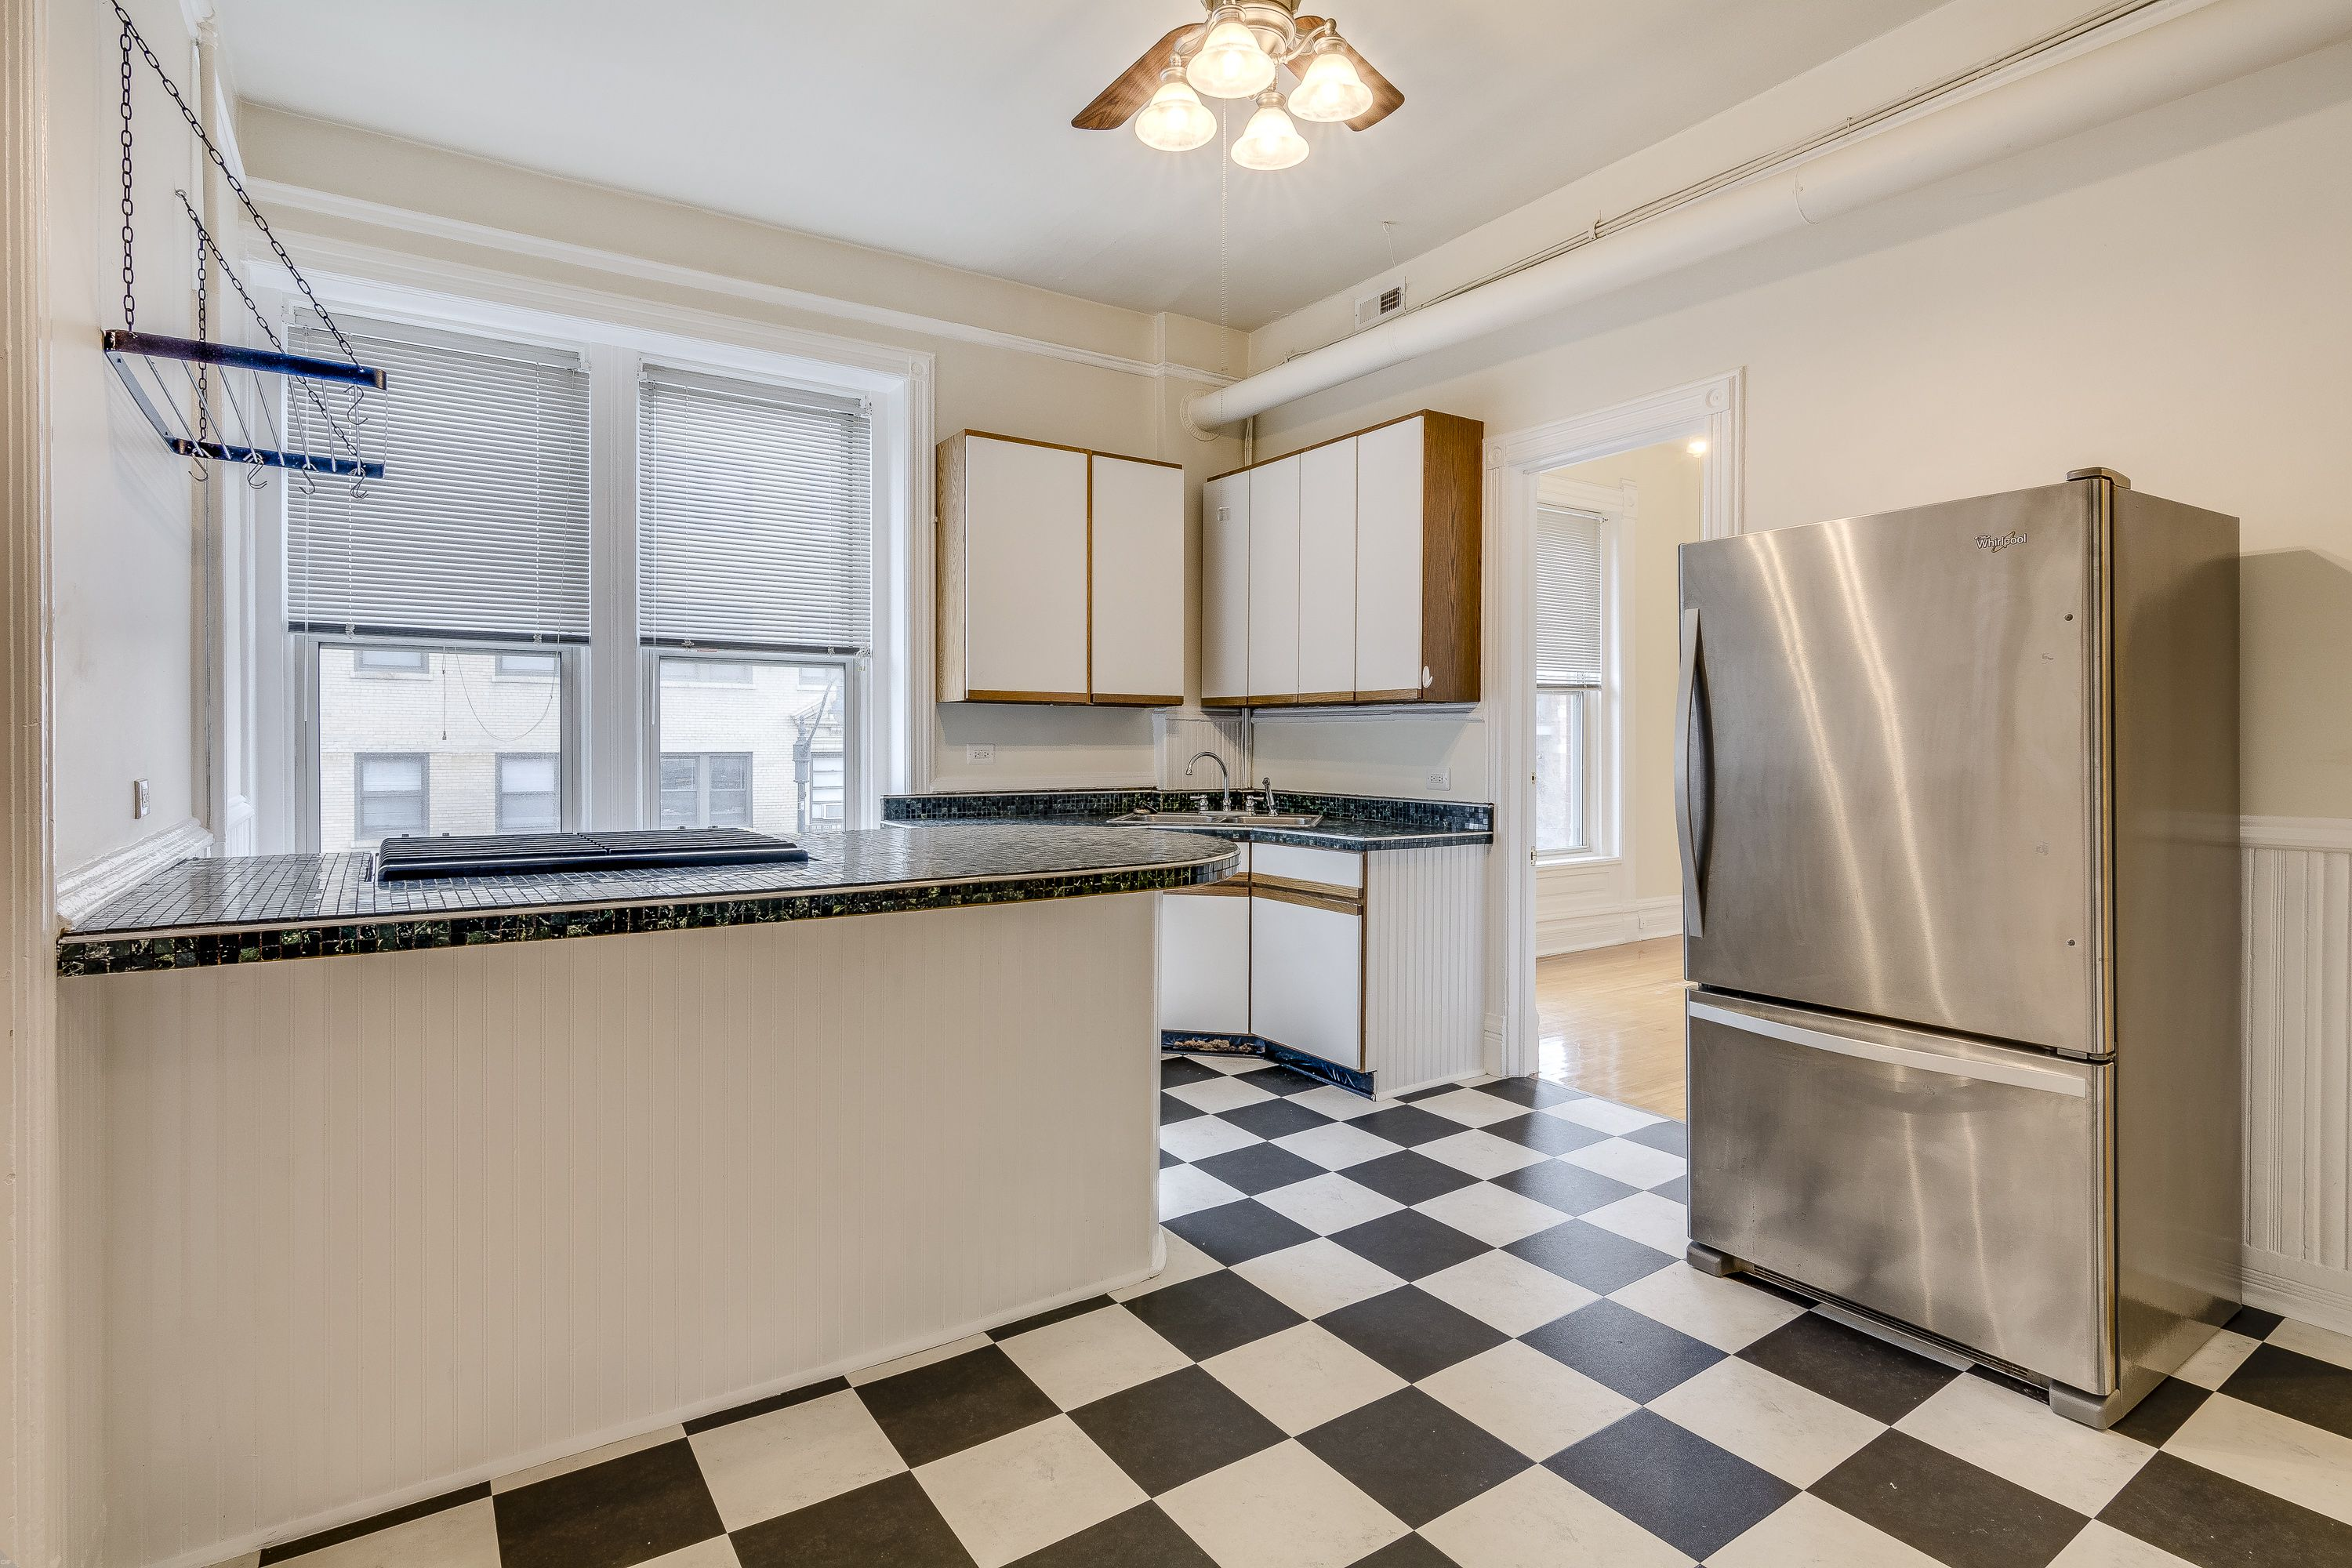 Retro style kitchen with stainless steel appliances, black